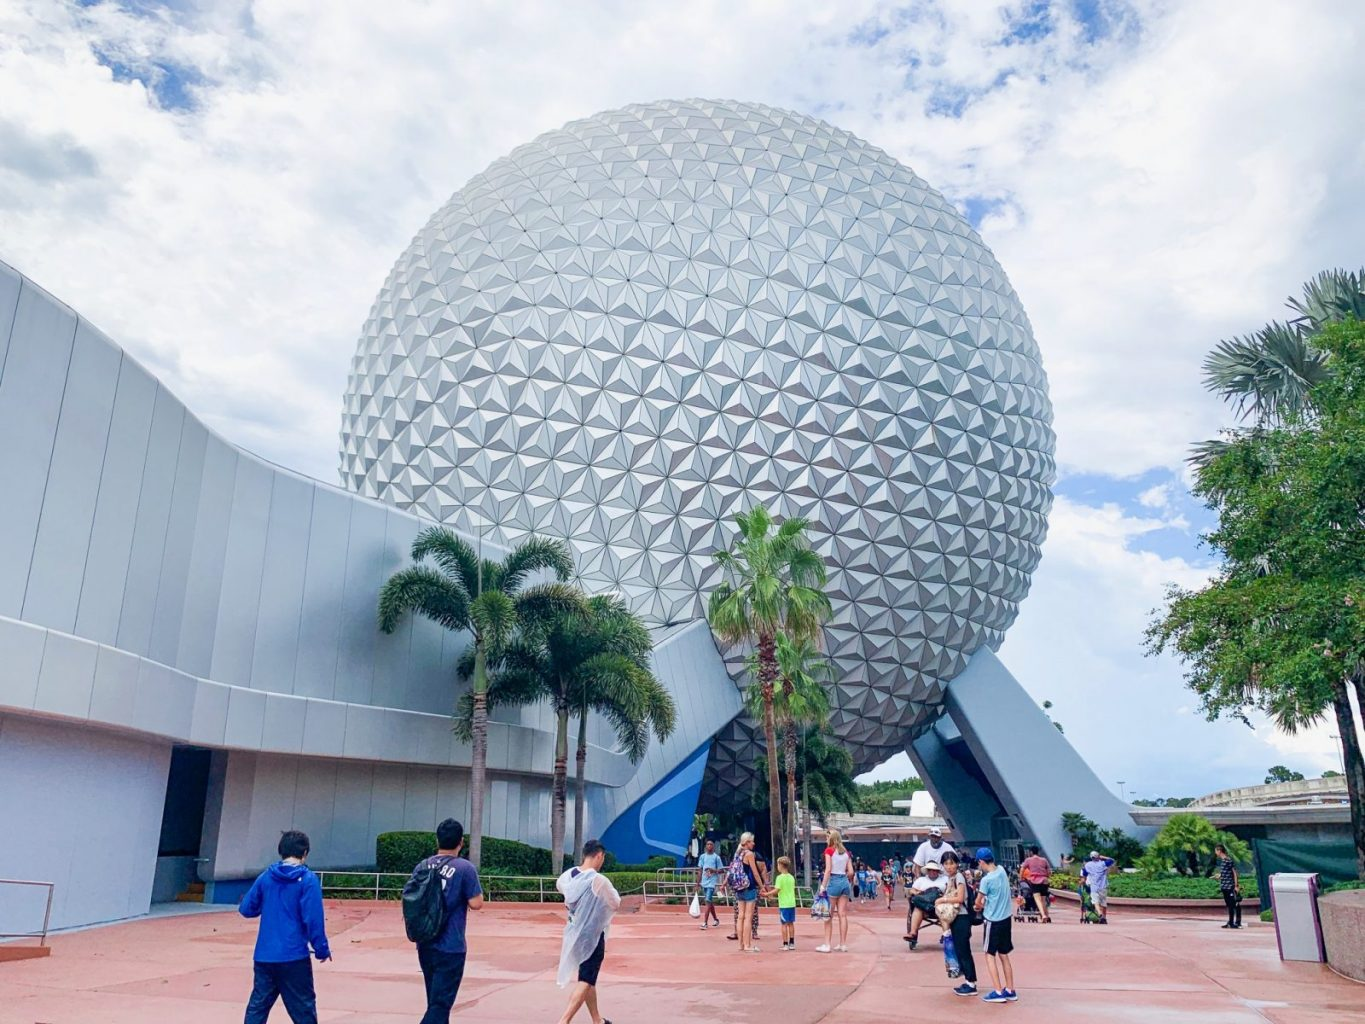 Outside of Spaceship Earth ride at Disney's Epcot park